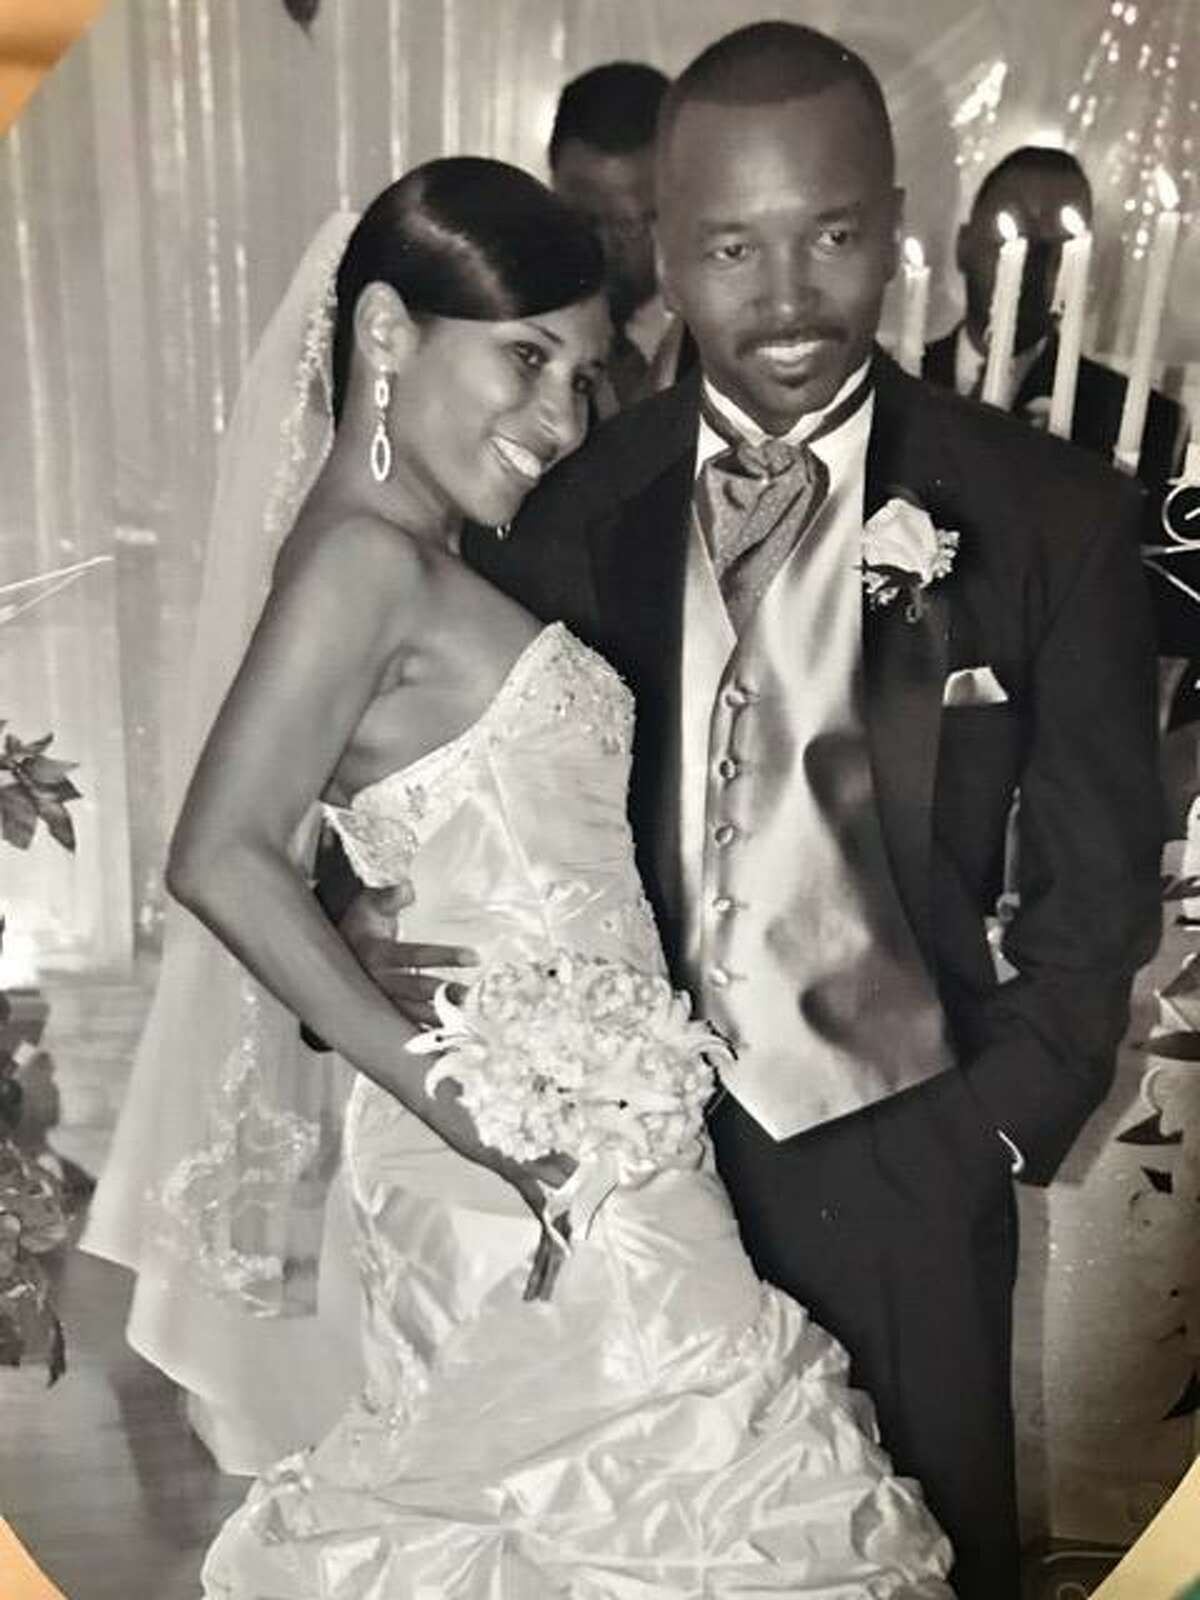 Jackie Davis-Delane and Patrick Delane, shown here in 2007 wedding pictures, were both killed by a wrong-way driver Sunday morning.